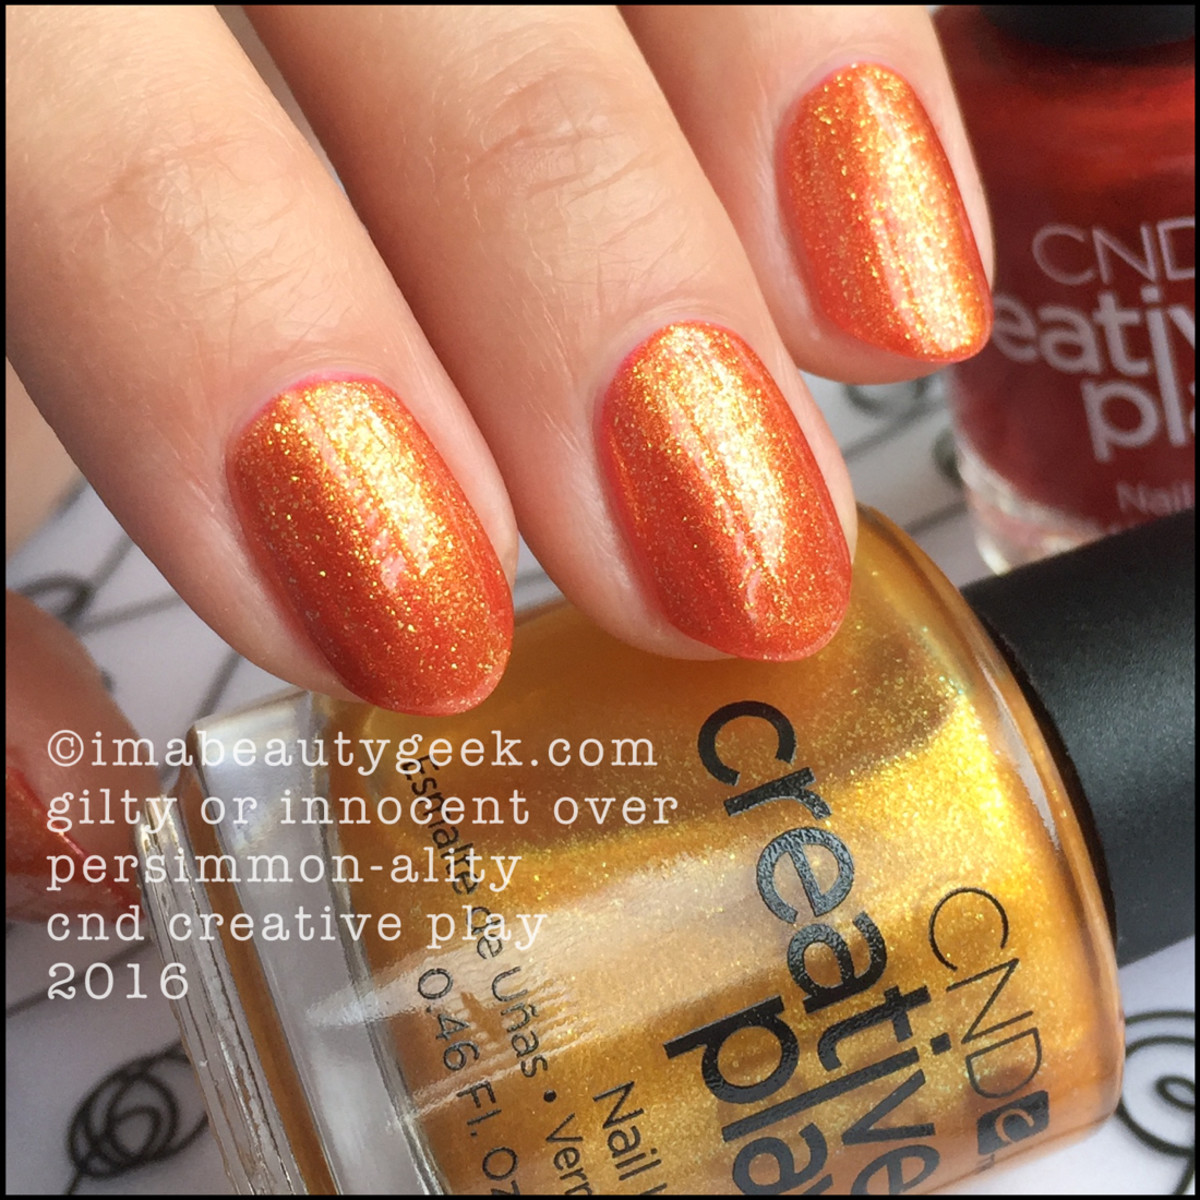 CND Creative Play Gilty or Innocent over_CND Creative Play Nail Polish Swatches 2016